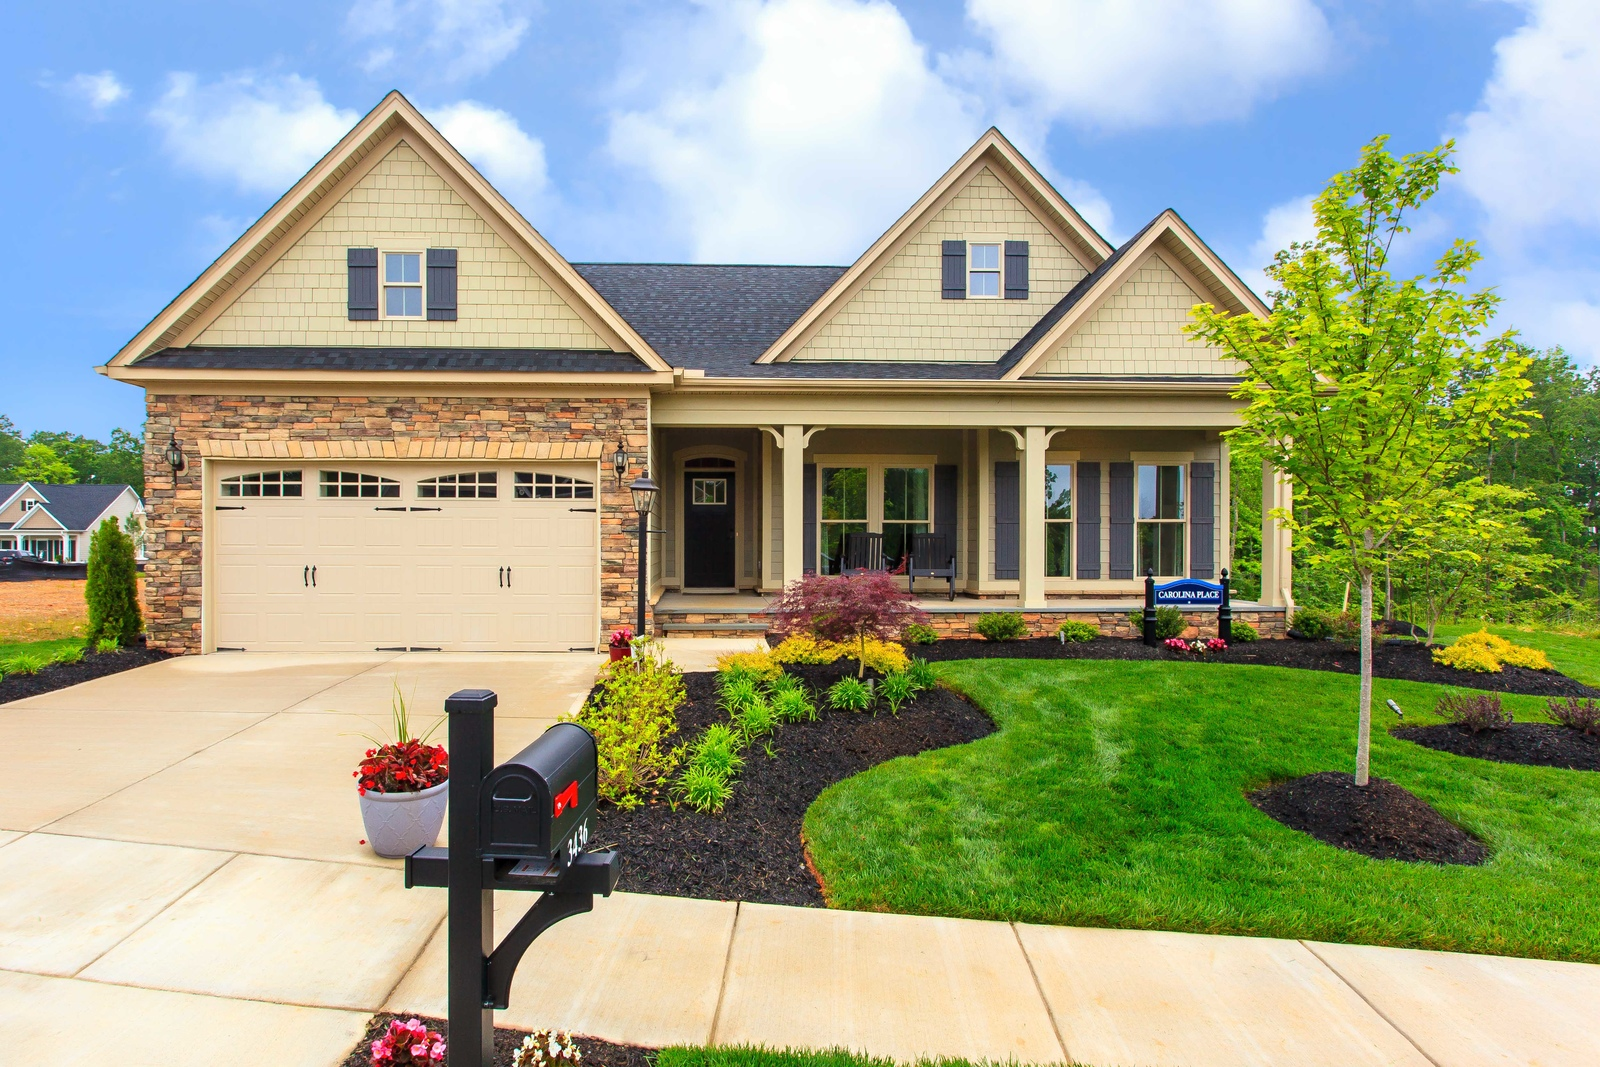 New Homes for sale at Sarver's Mill in Sarver, PA within the